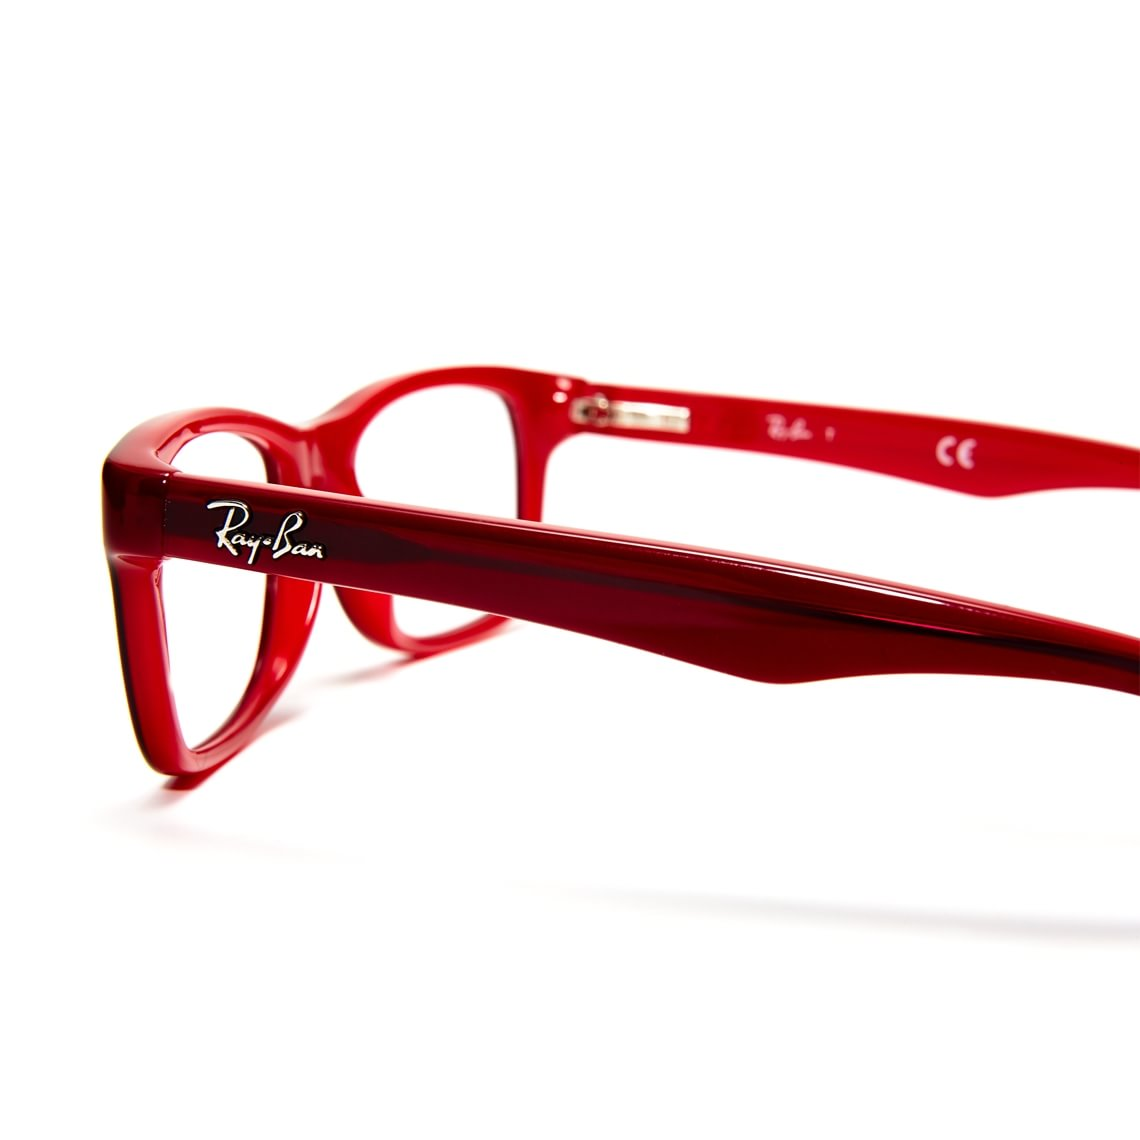 Ray-Ban RY Junior Vista 1531 3592 4616